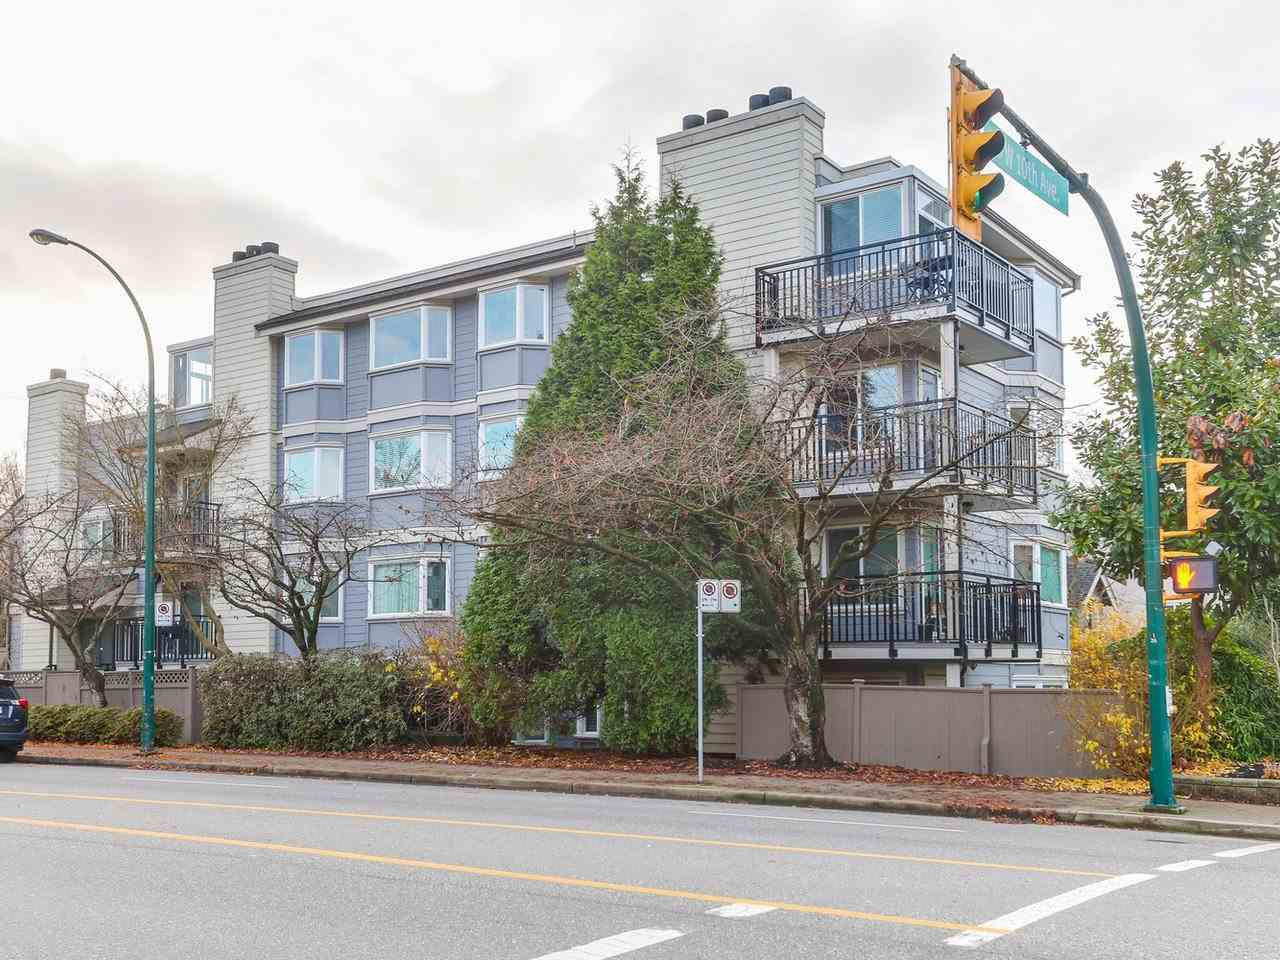 Main Photo: 9 1606 W 10TH Avenue in Vancouver: Fairview VW Condo for sale (Vancouver West)  : MLS®# R2224878